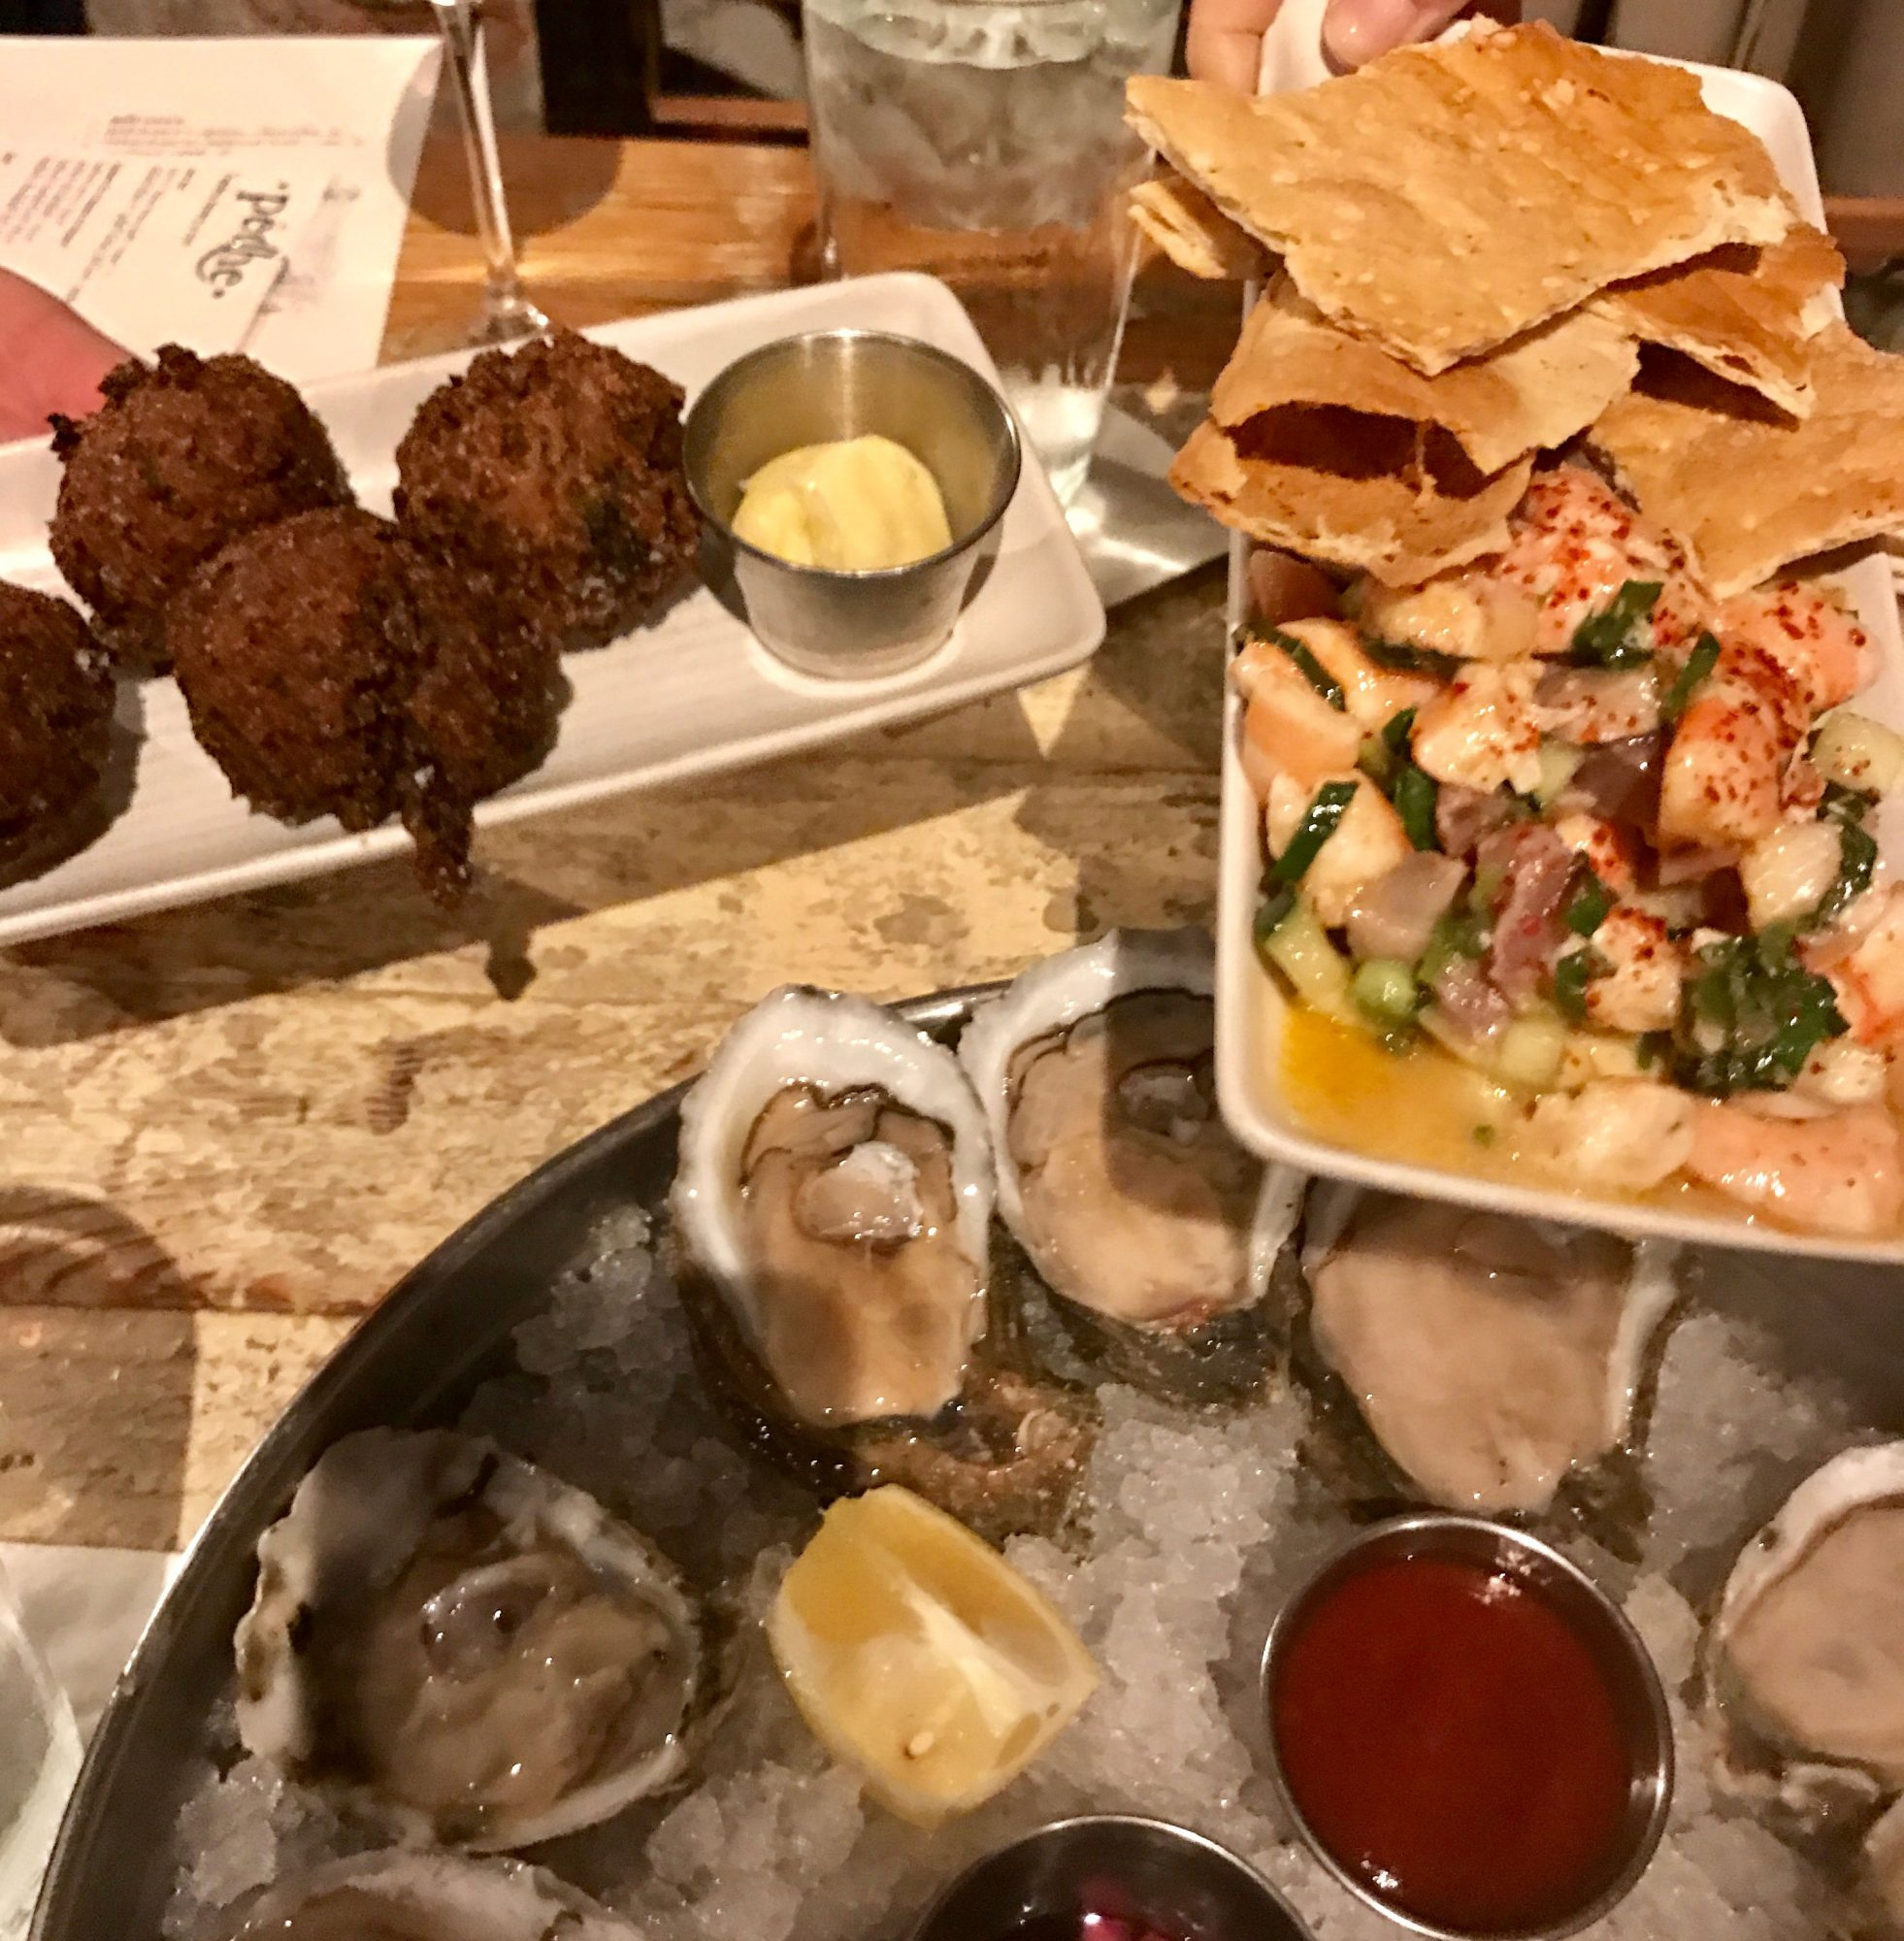 Food Assortment at Peche in New Orleans